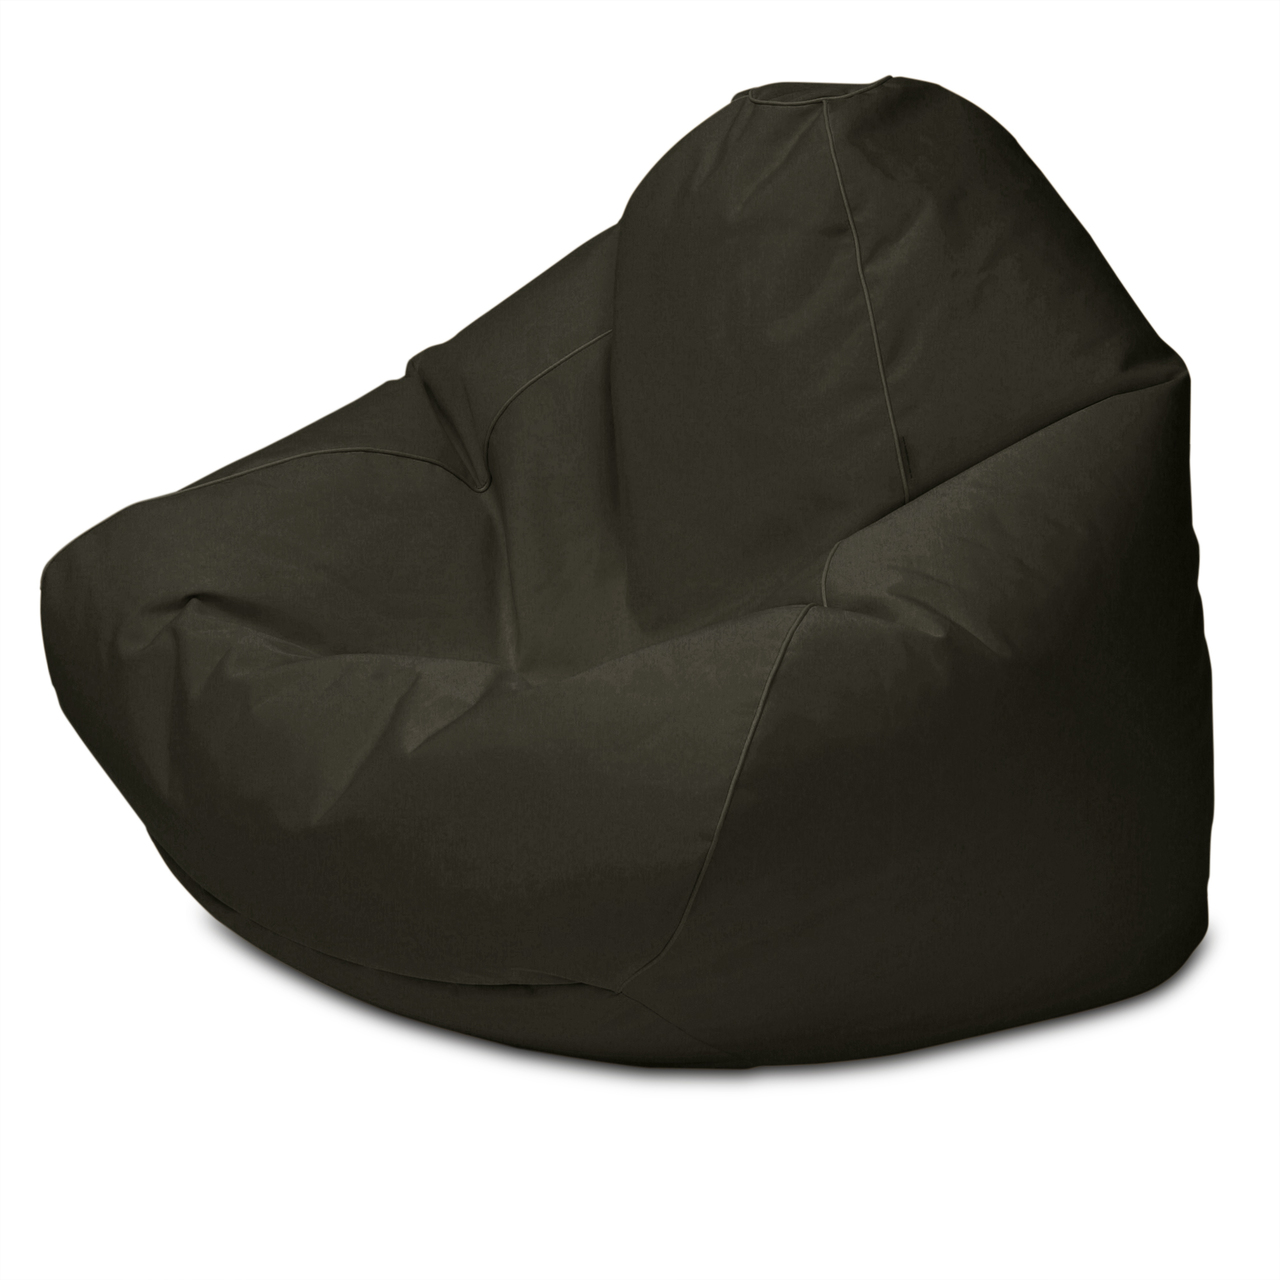 Sunbrella Outdoor Queen Size Bean Bag in charcoal tweed